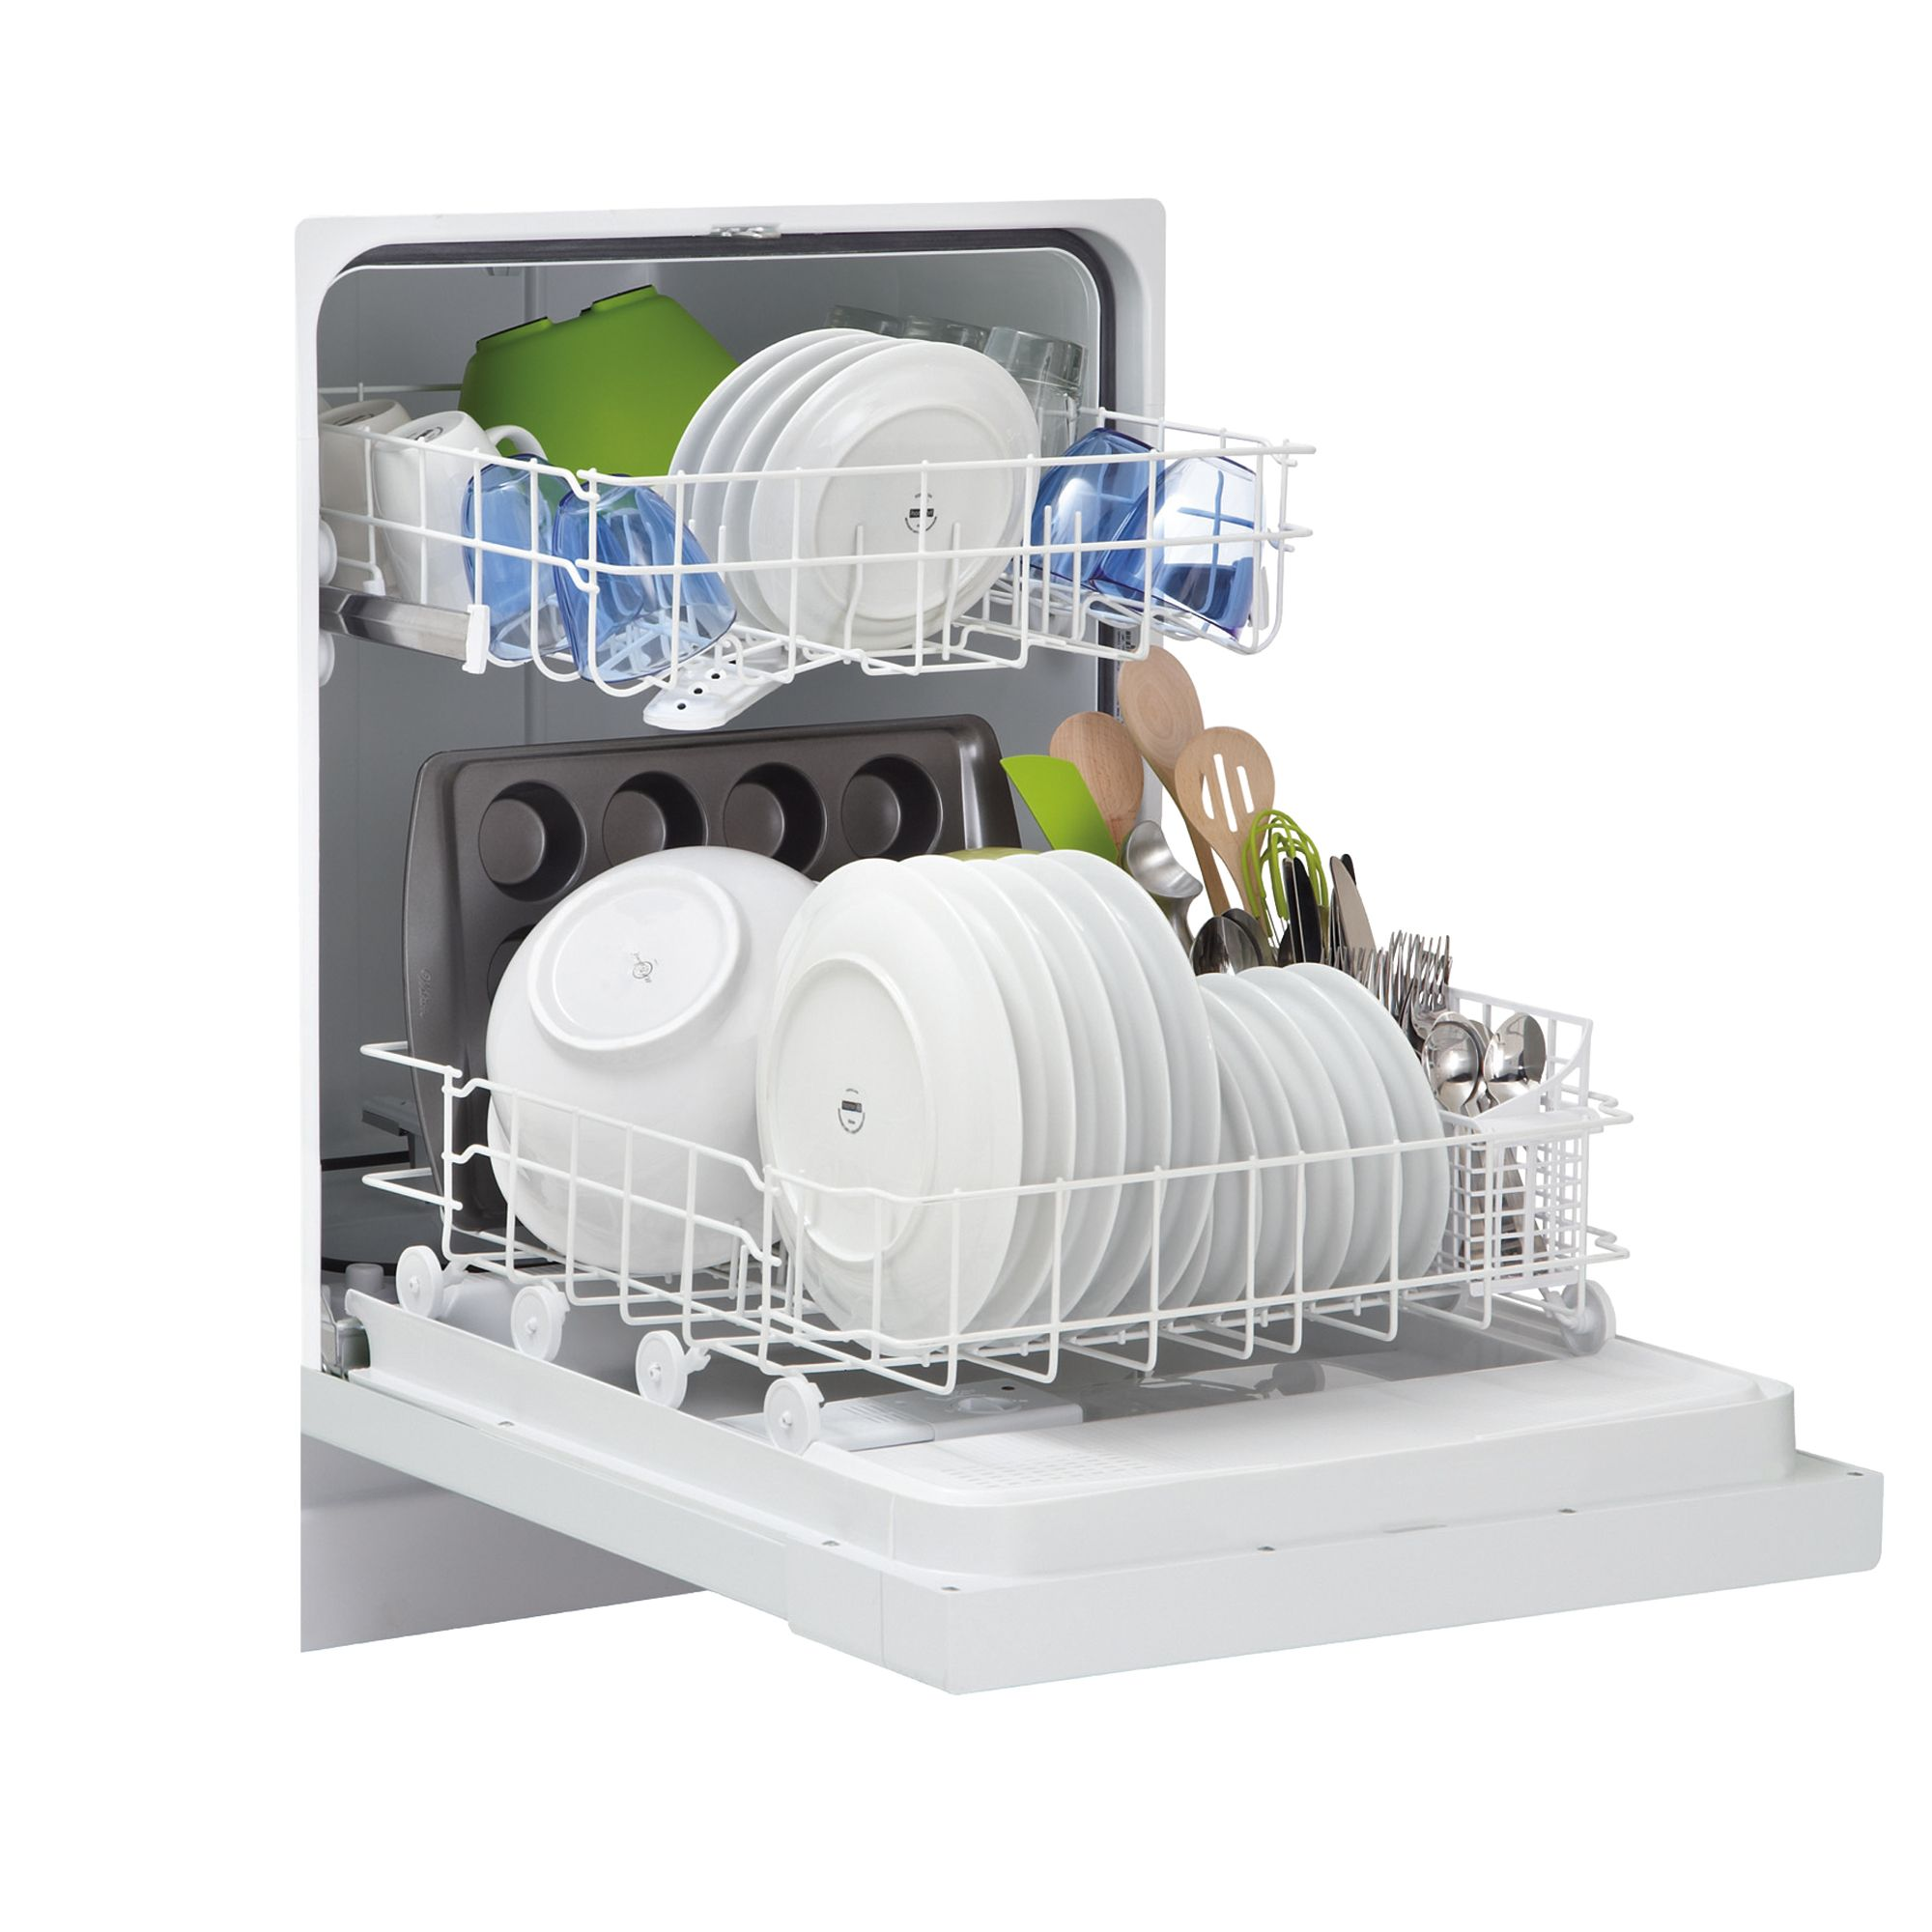 "Frigidaire FBD2400KW 24"" White Built-In Dishwasher - White"